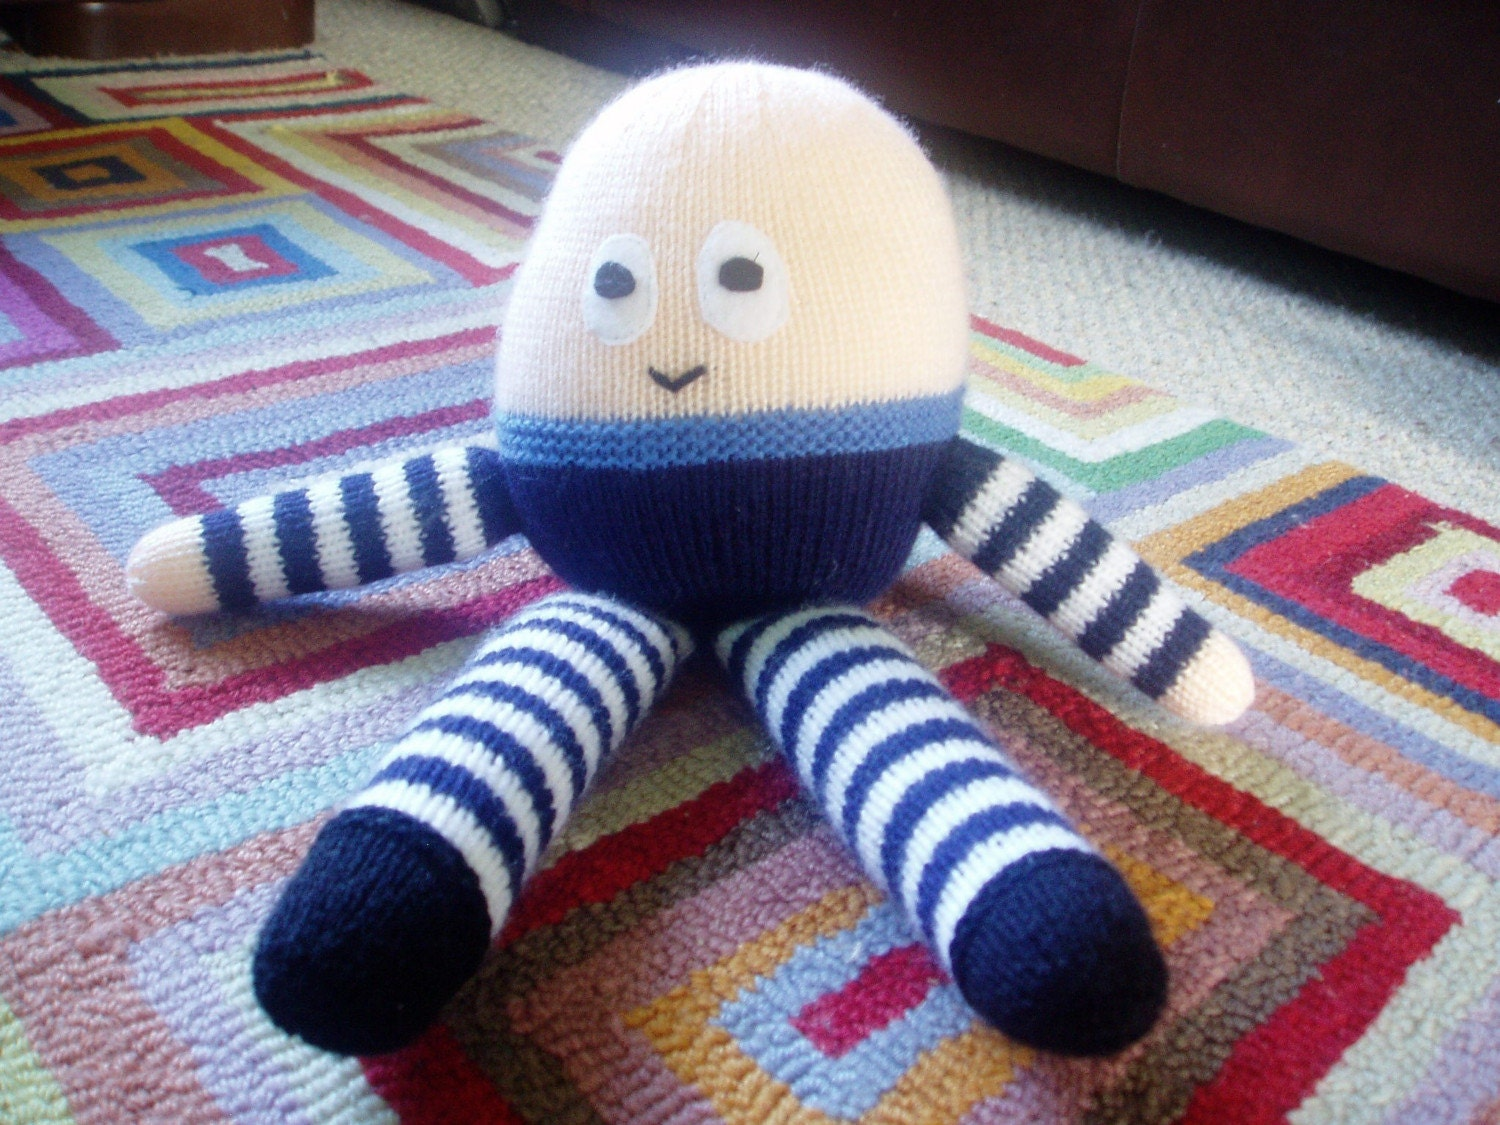 Knitting Pattern For Humpty Dumpty : PDF Knitting Pattern Humpty Dumpty by missaine on Etsy